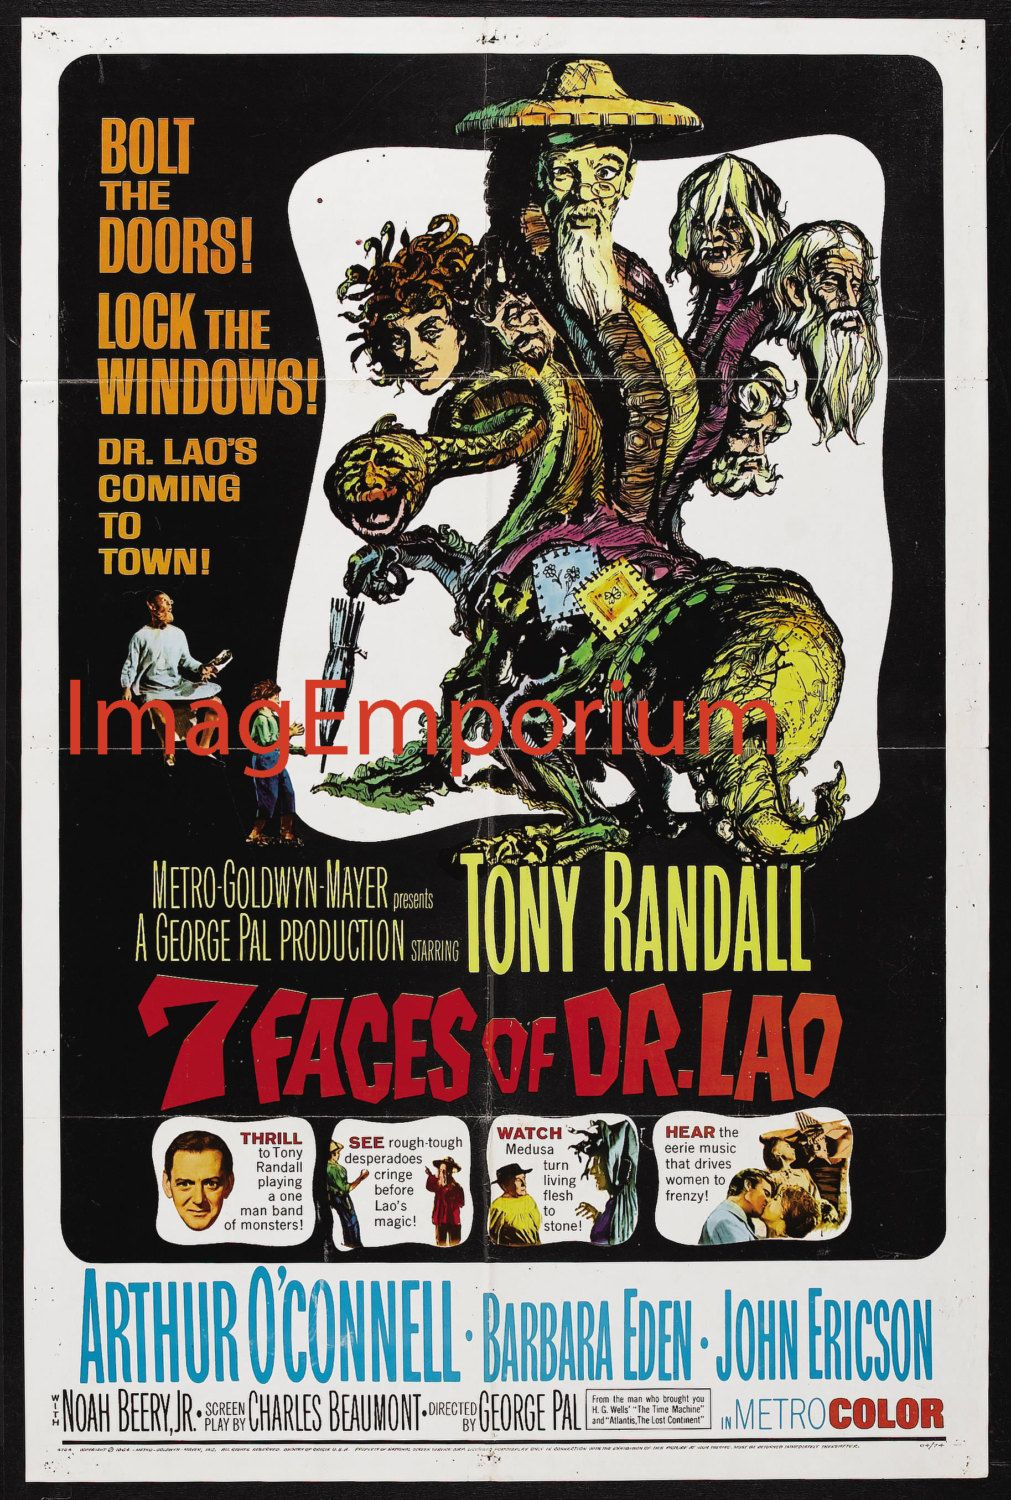 7 Faces of Dr Lao Vintage Movie posters (download) | Etsy